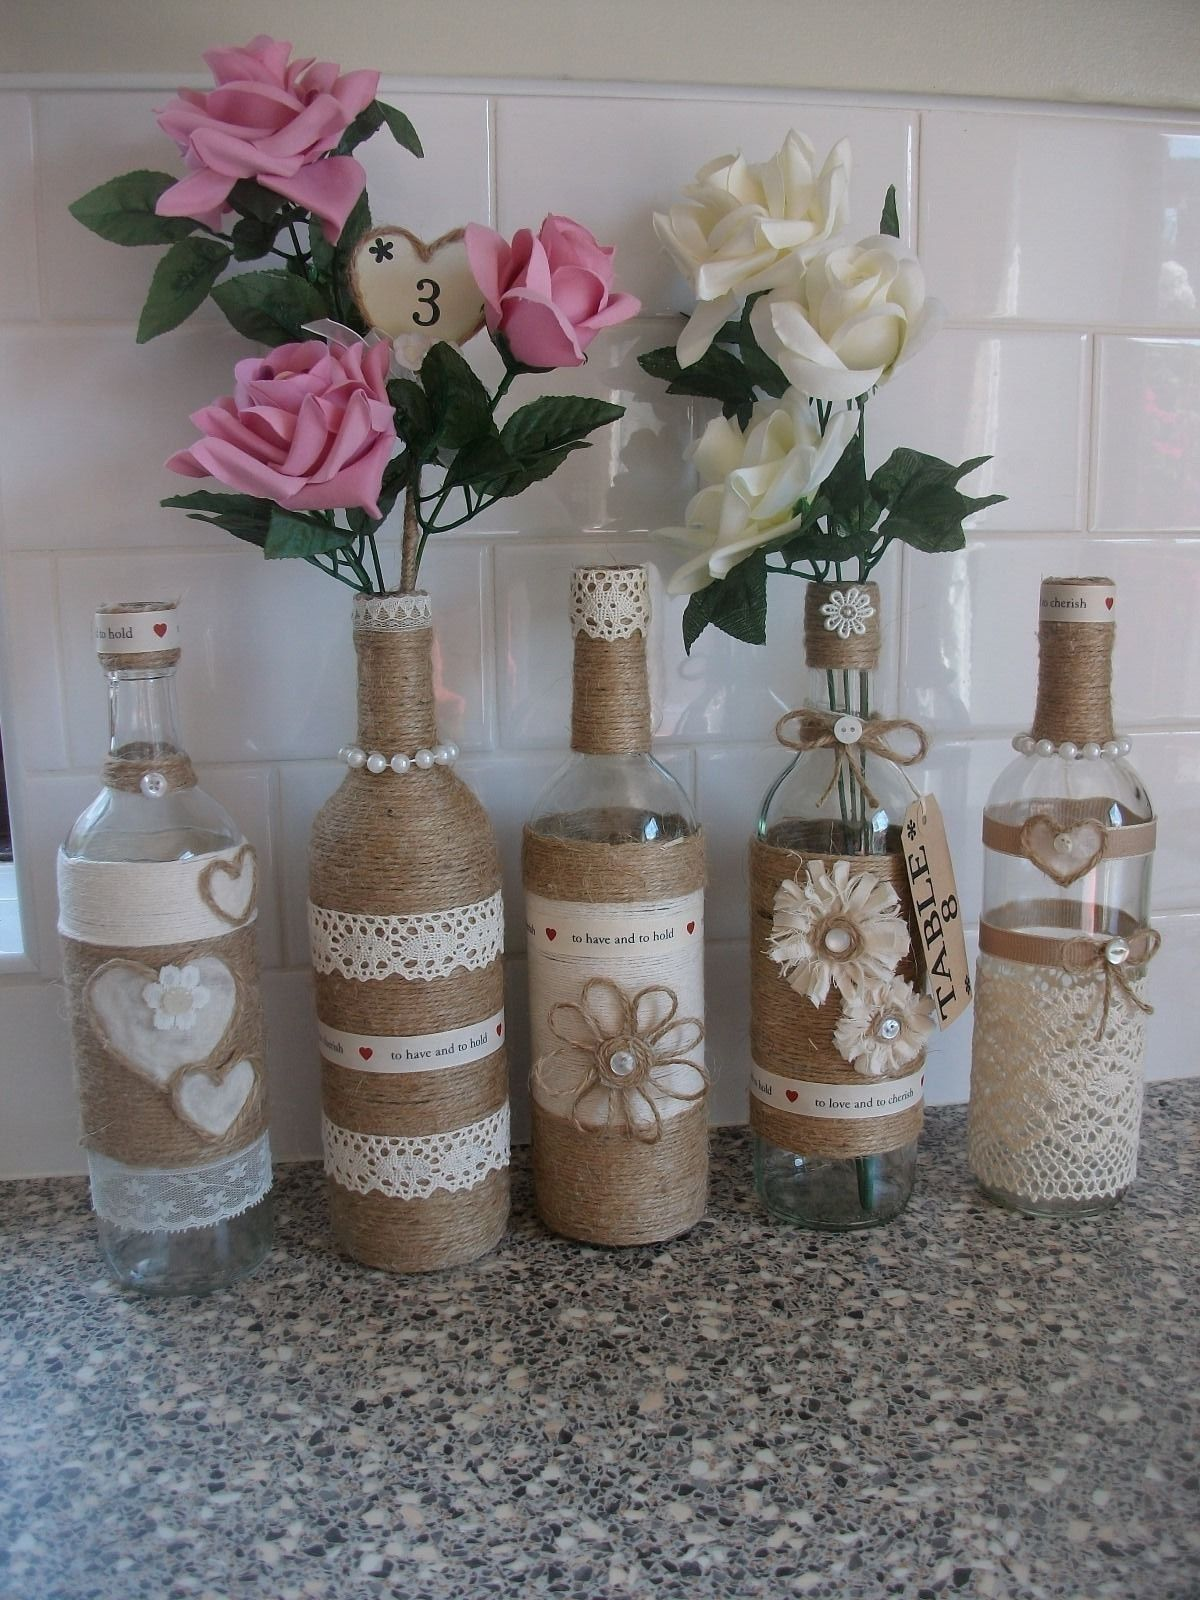 For landy only x in home furniture u diy wedding supplies